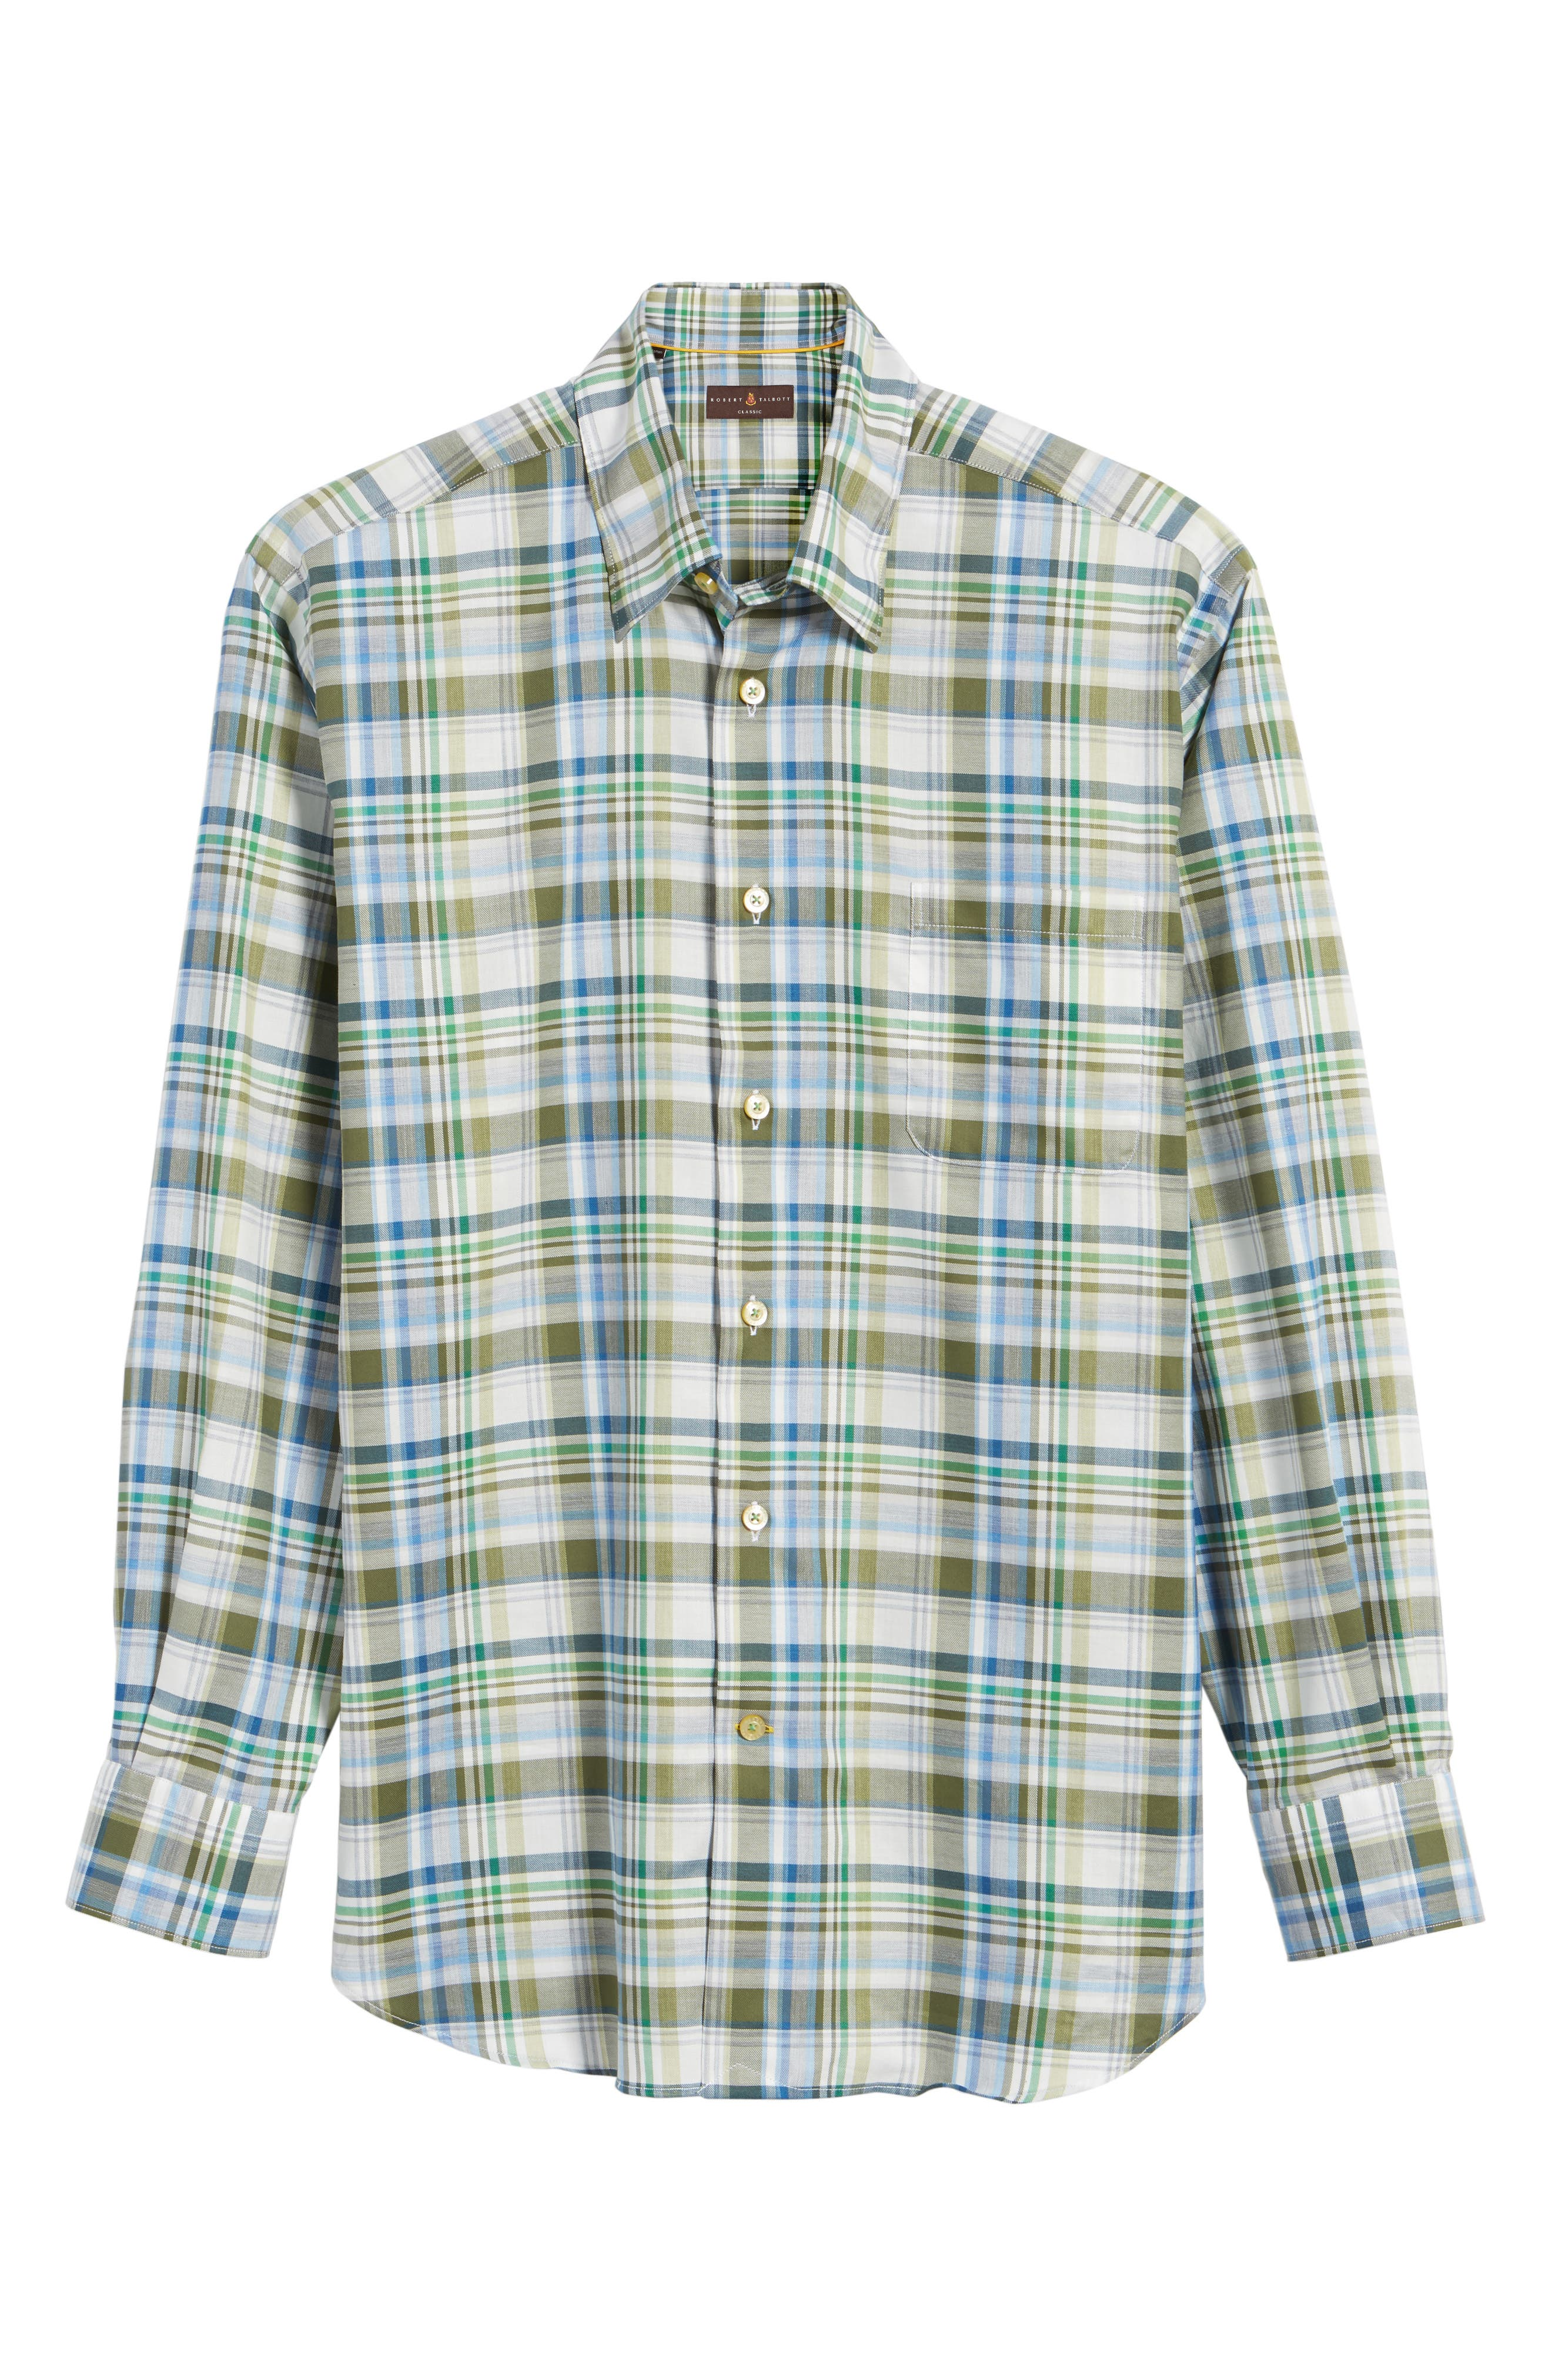 Anderson Classic Fit Plaid Micro Twill Sport Shirt,                             Alternate thumbnail 6, color,                             300